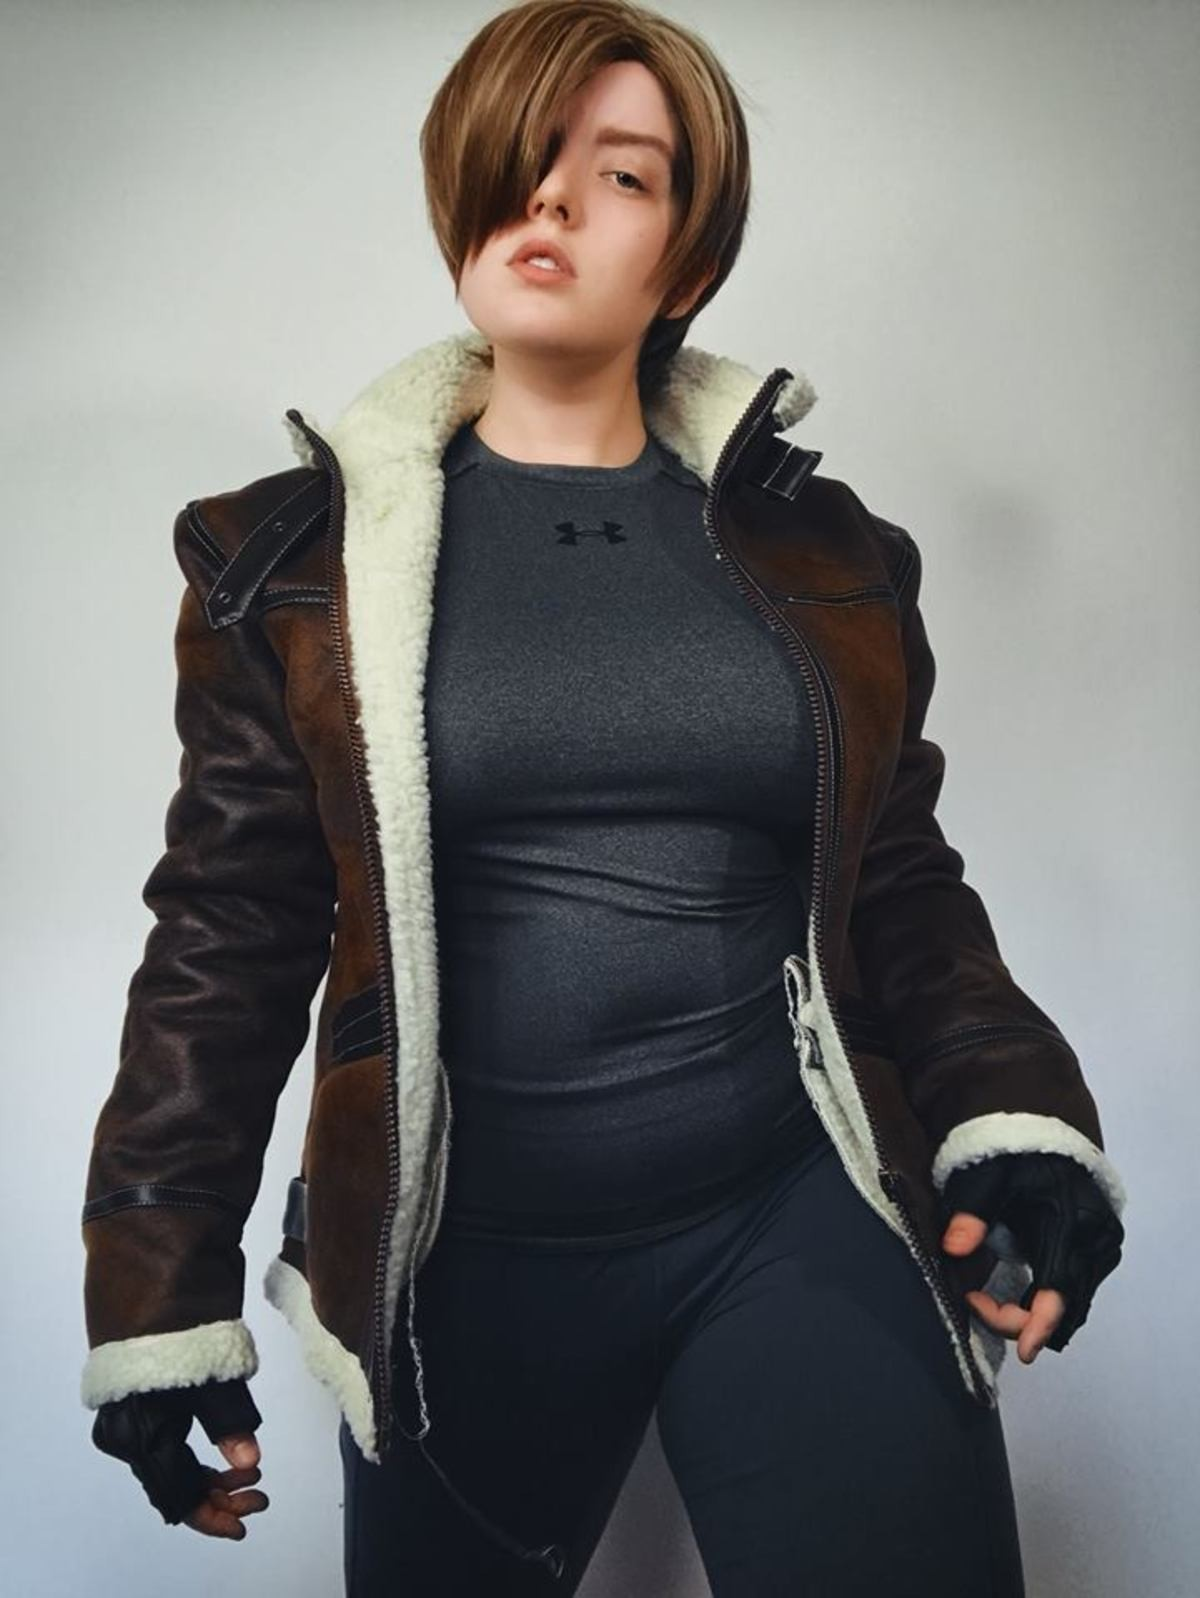 N-No Way Fag. post ur leon kennedy memes join list: ThiccThighs (4608 subs)Mention History join list:. I see the president equipped someone else with ballistics for the mission